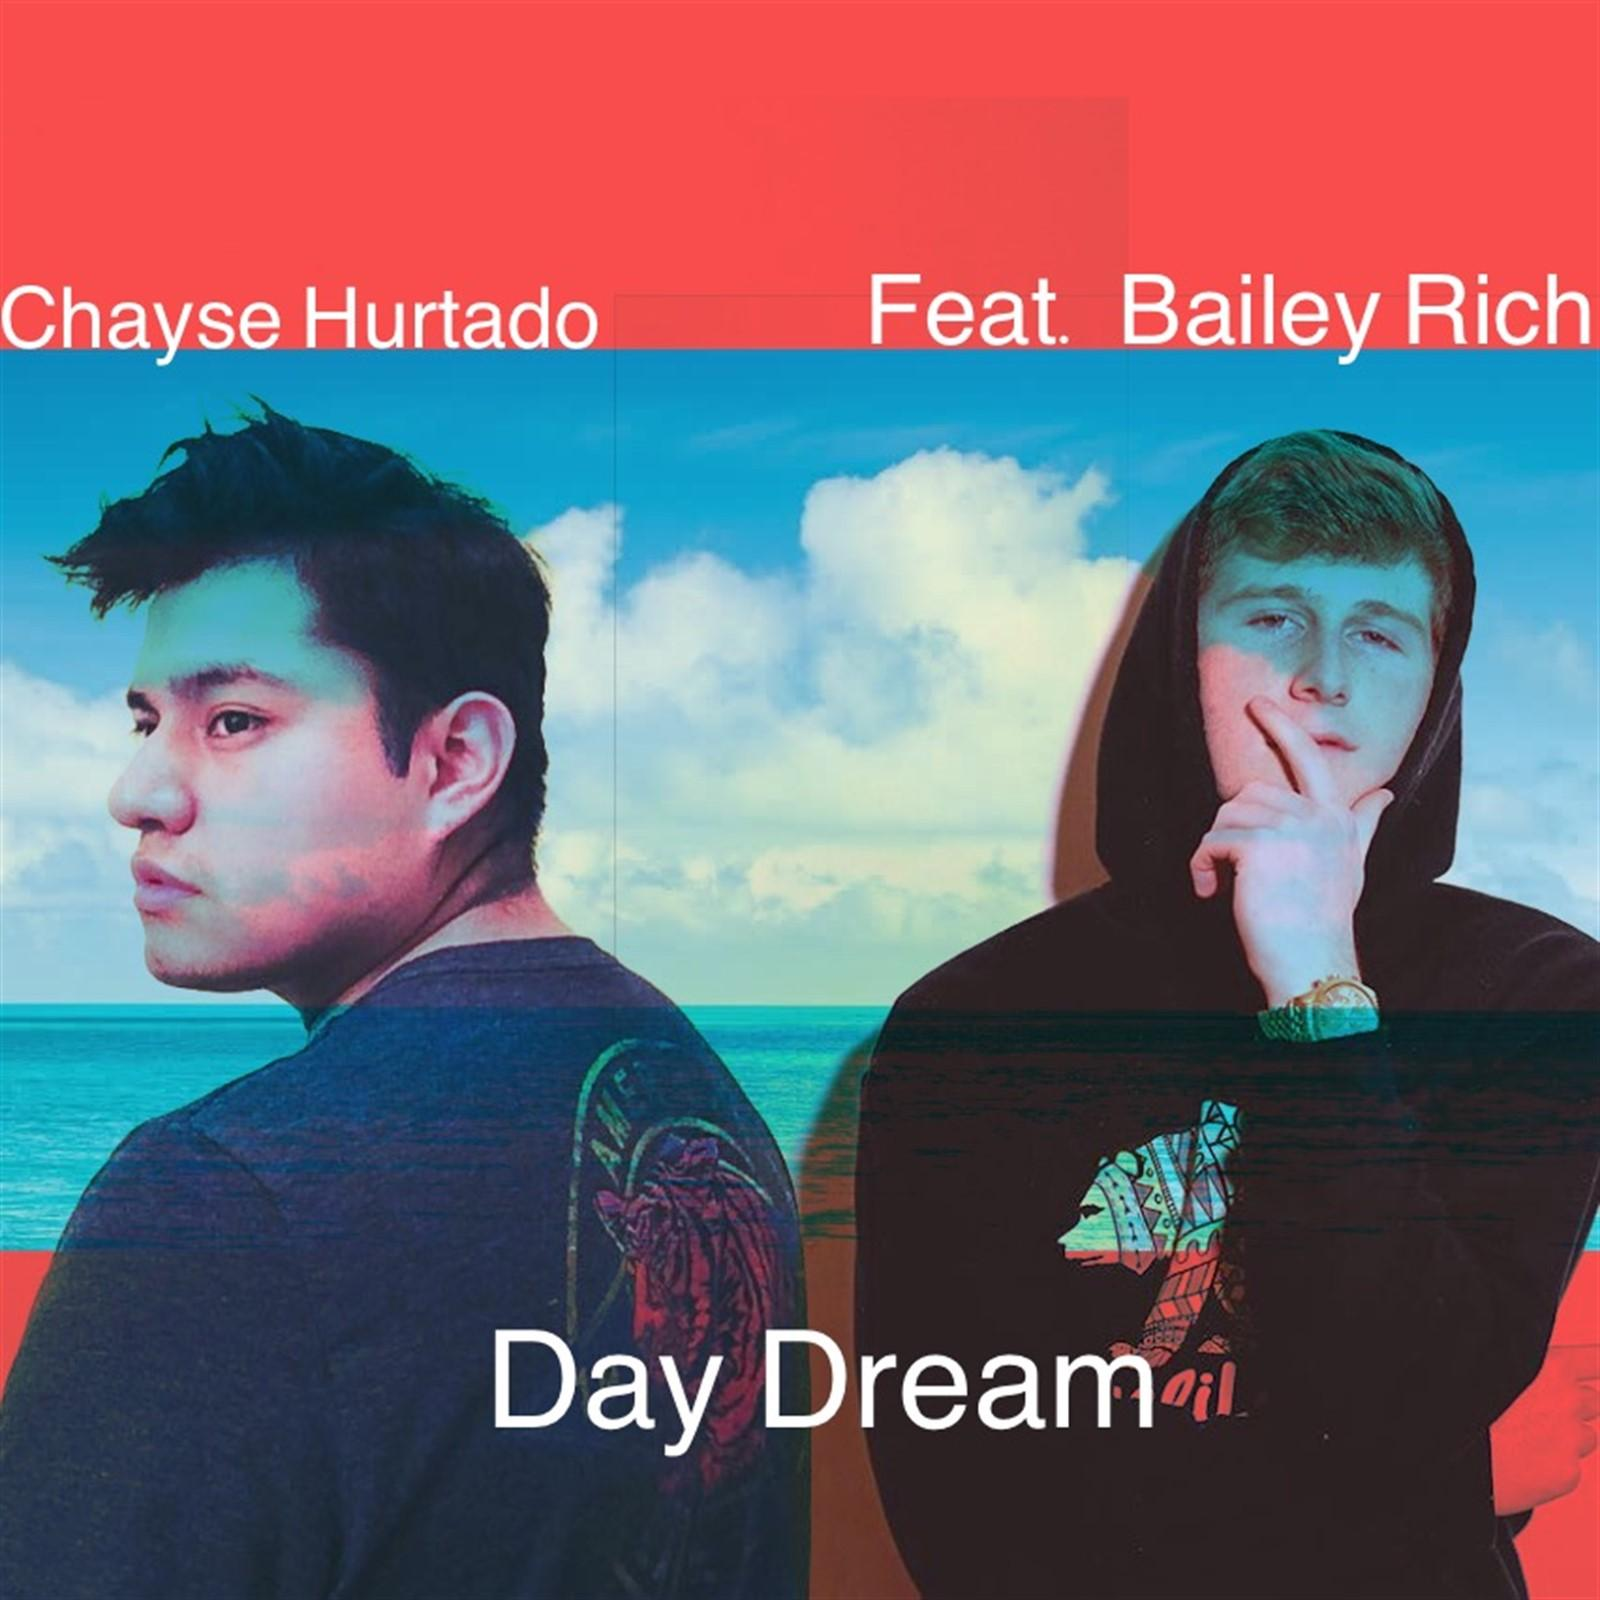 Chayse Hurtado - Day Dream (Feat. Bailey Rich)